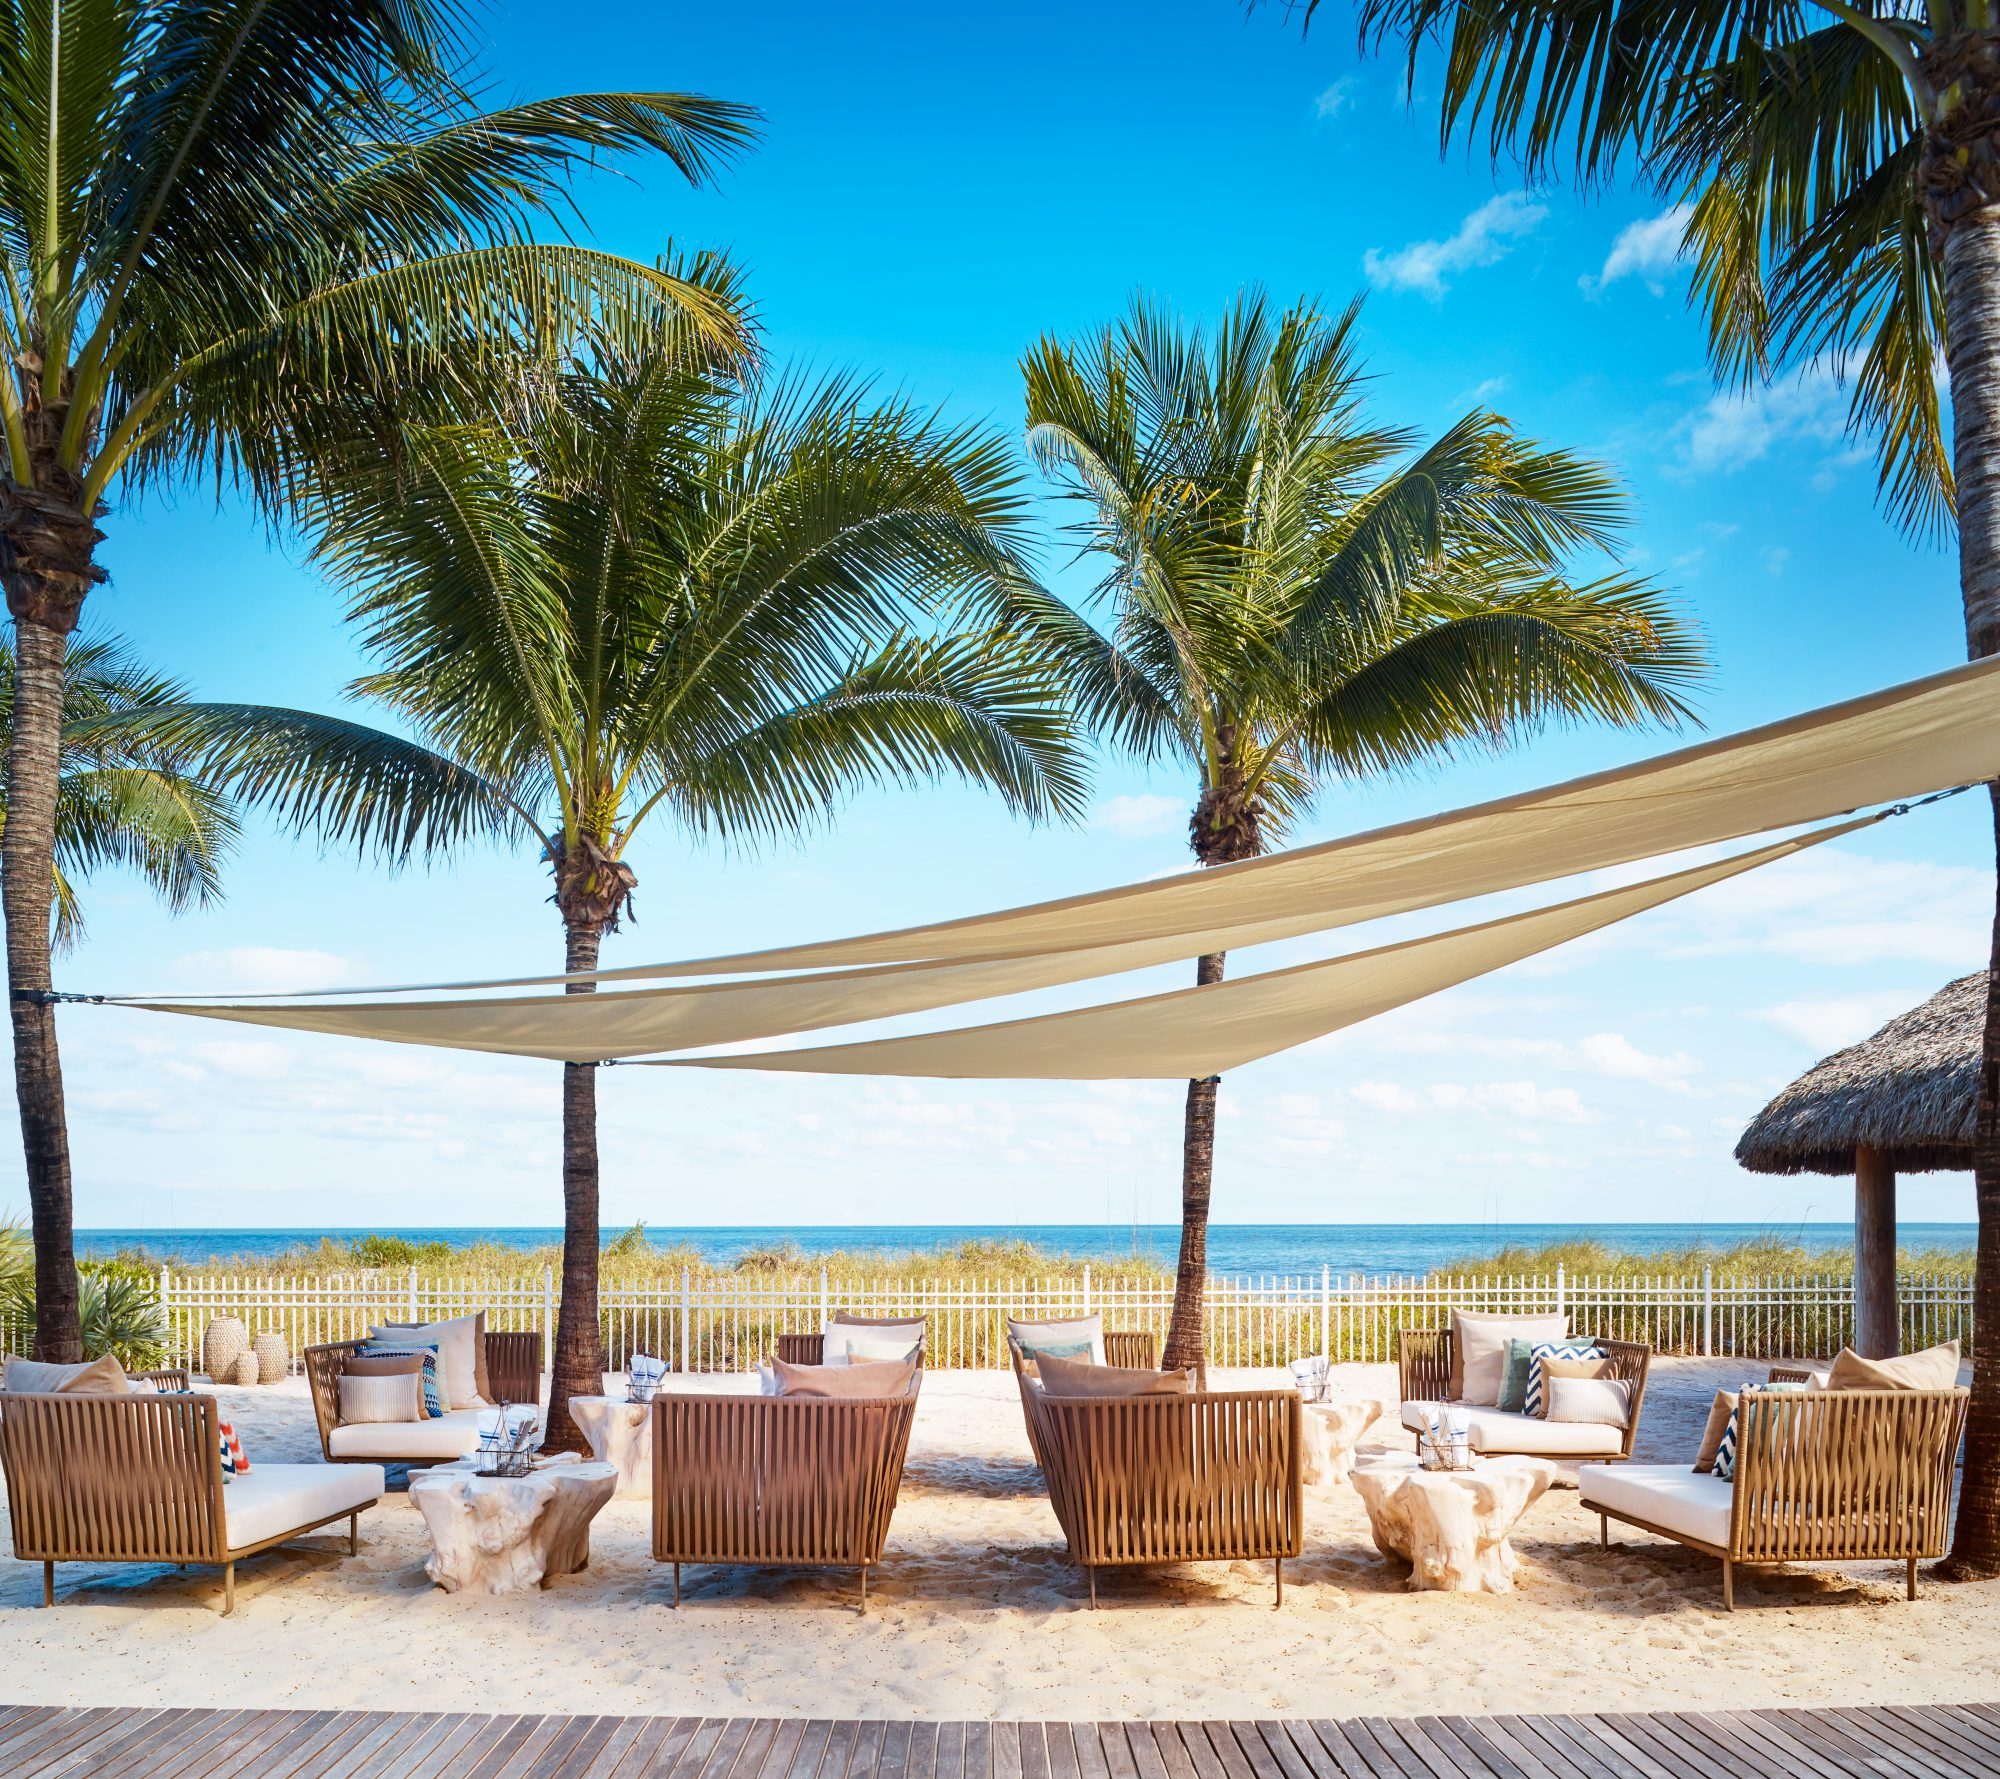 While the rest of the beaches in Miami tend to attract crowds, the private beach at The Ritz-Carlton in Key Biscayne feels like a world away from the bright lights of the Magic City. Families rave about the resort's Ritz Kids program that features coastal activities from Jean-Michel Cousteau's Ocean Futures Society. Adults will love the impressive tequila selection at RUMBAR, margaritas at the Mexican-style Cantina Beach, champagne and rosé at Dune, and classic cocktails with a Floridian twist at Lightkeepers. 455 Grand Bay Drive, Key Biscayne, FL 33149